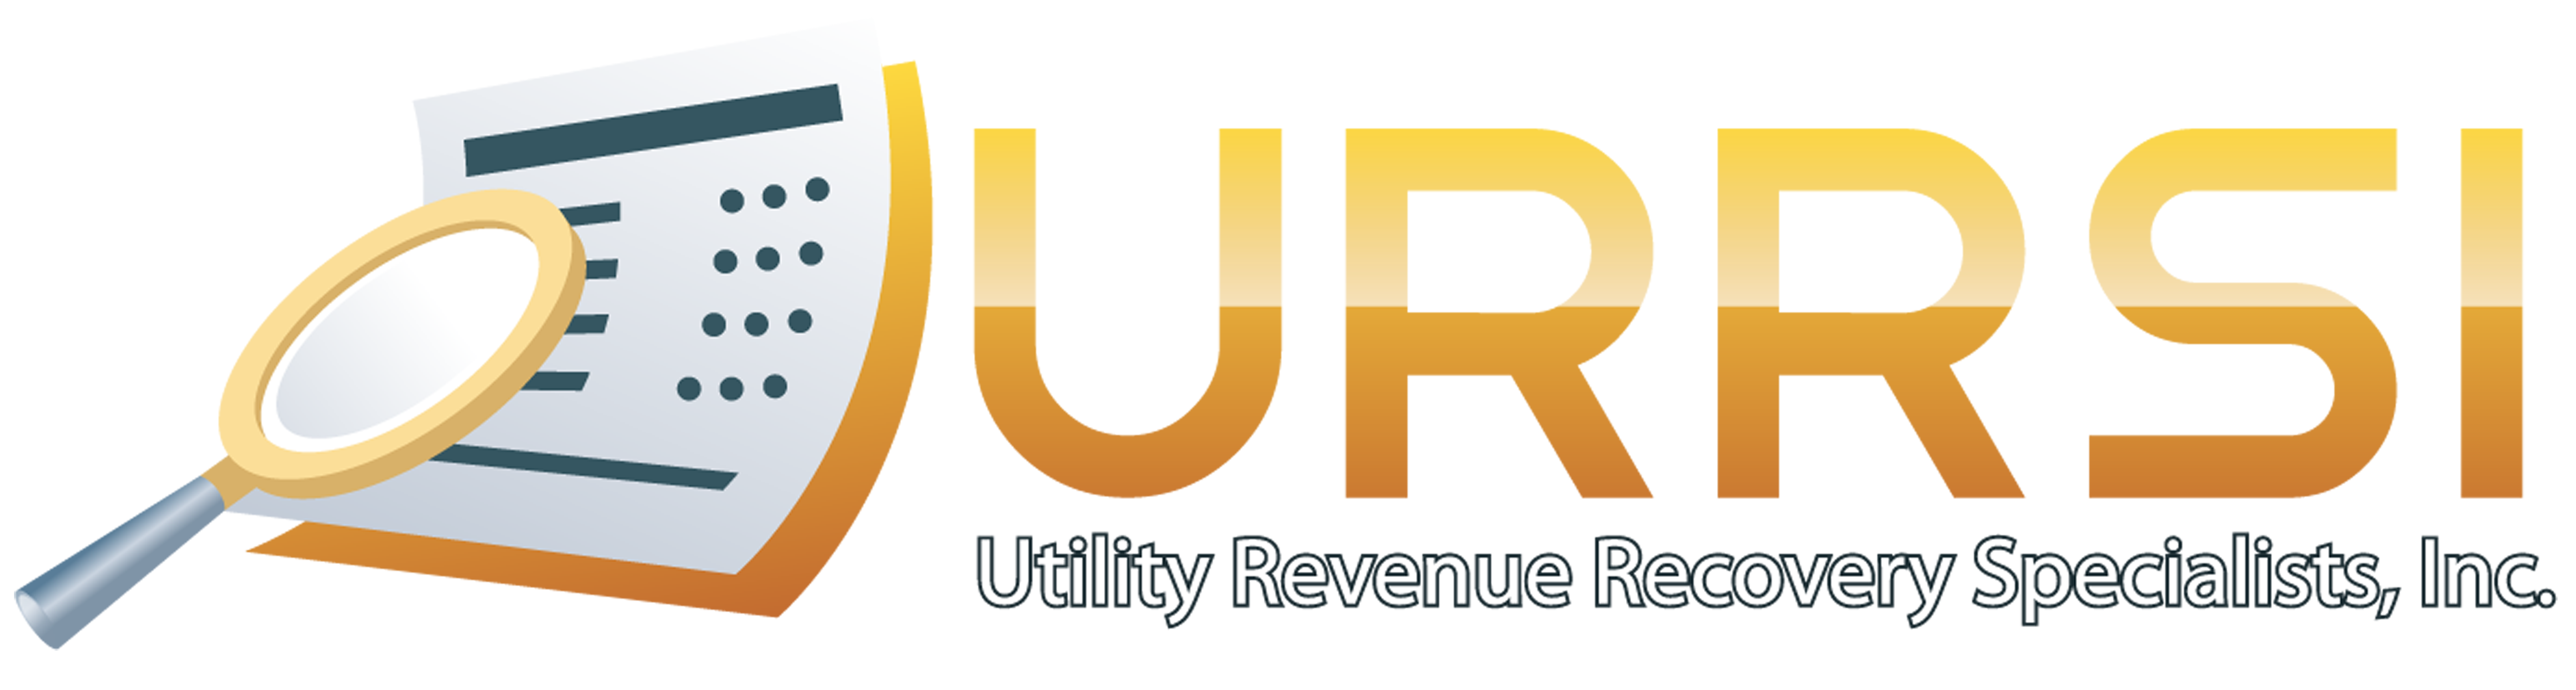 Utility Bill Audit - URRSI.com